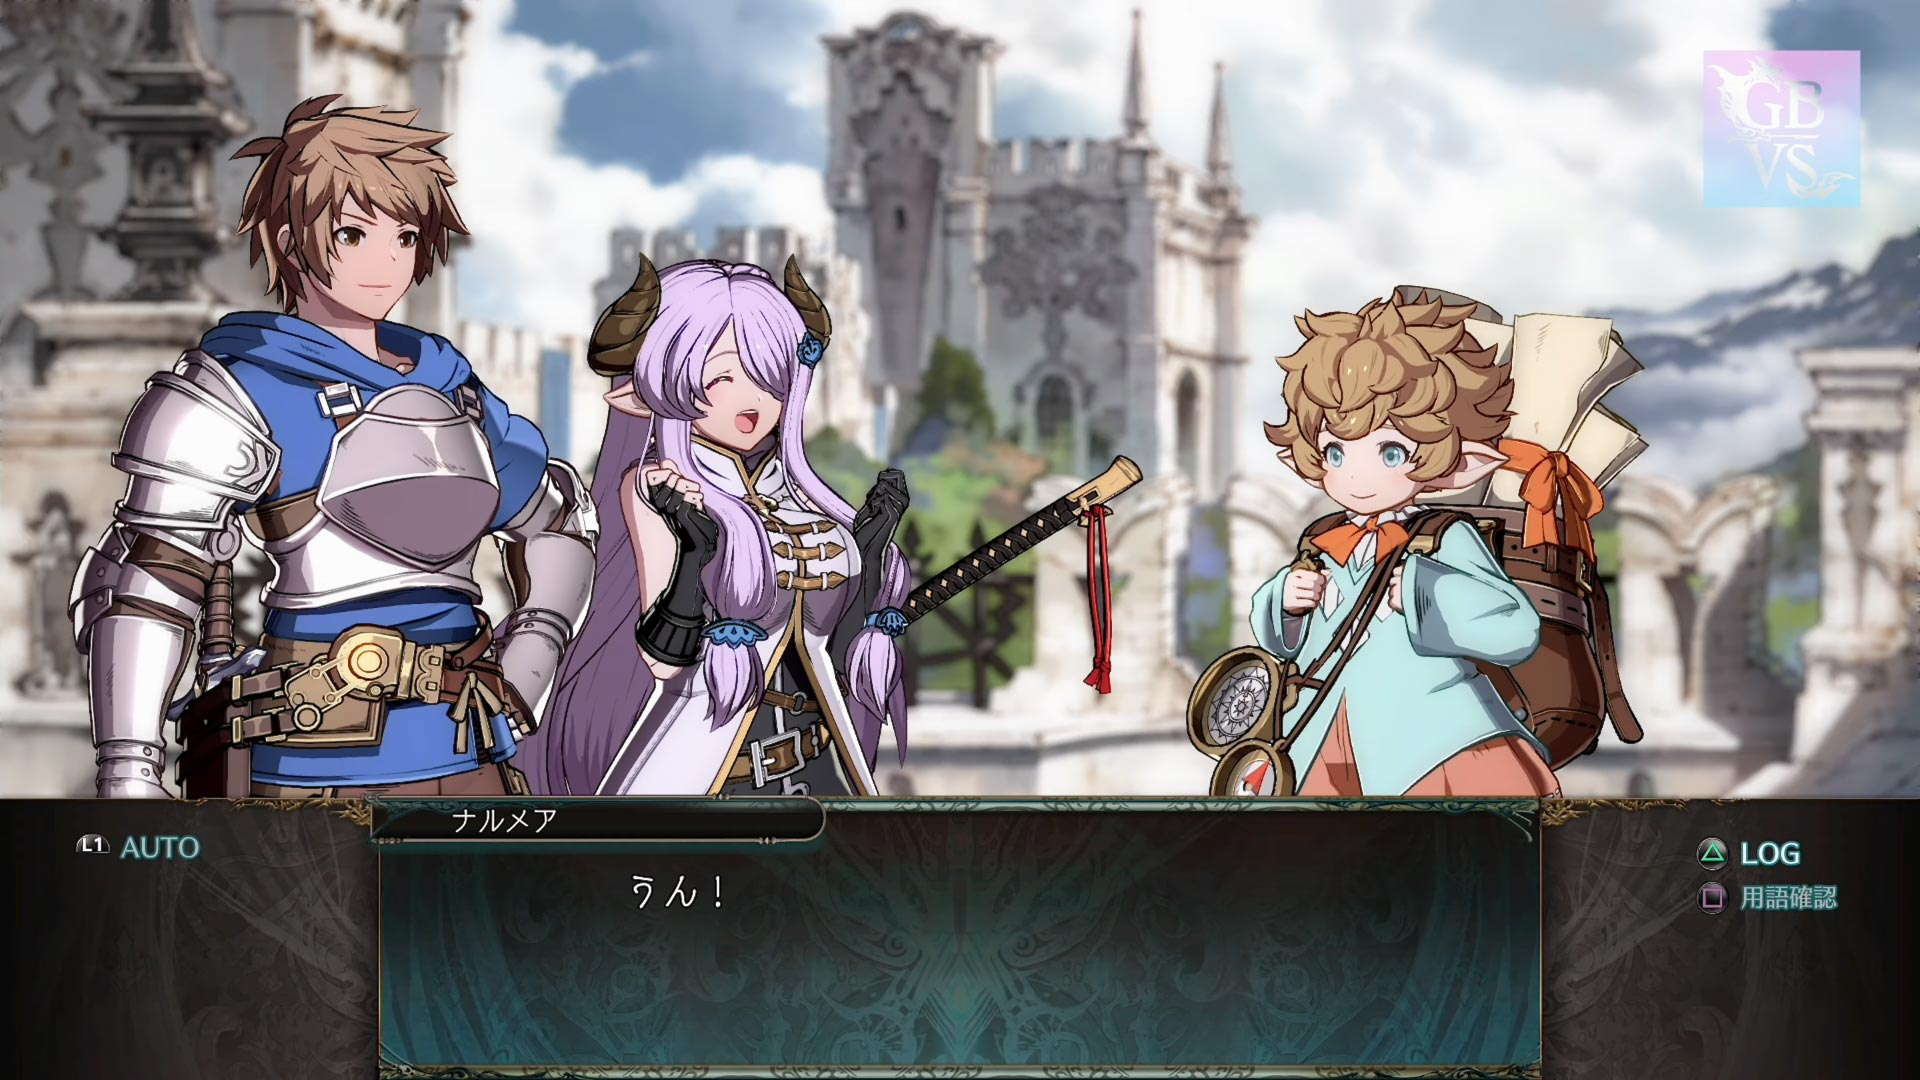 Granblue Fantasy Versus Narmaya Trailer Gallery 7 out of 12 image gallery